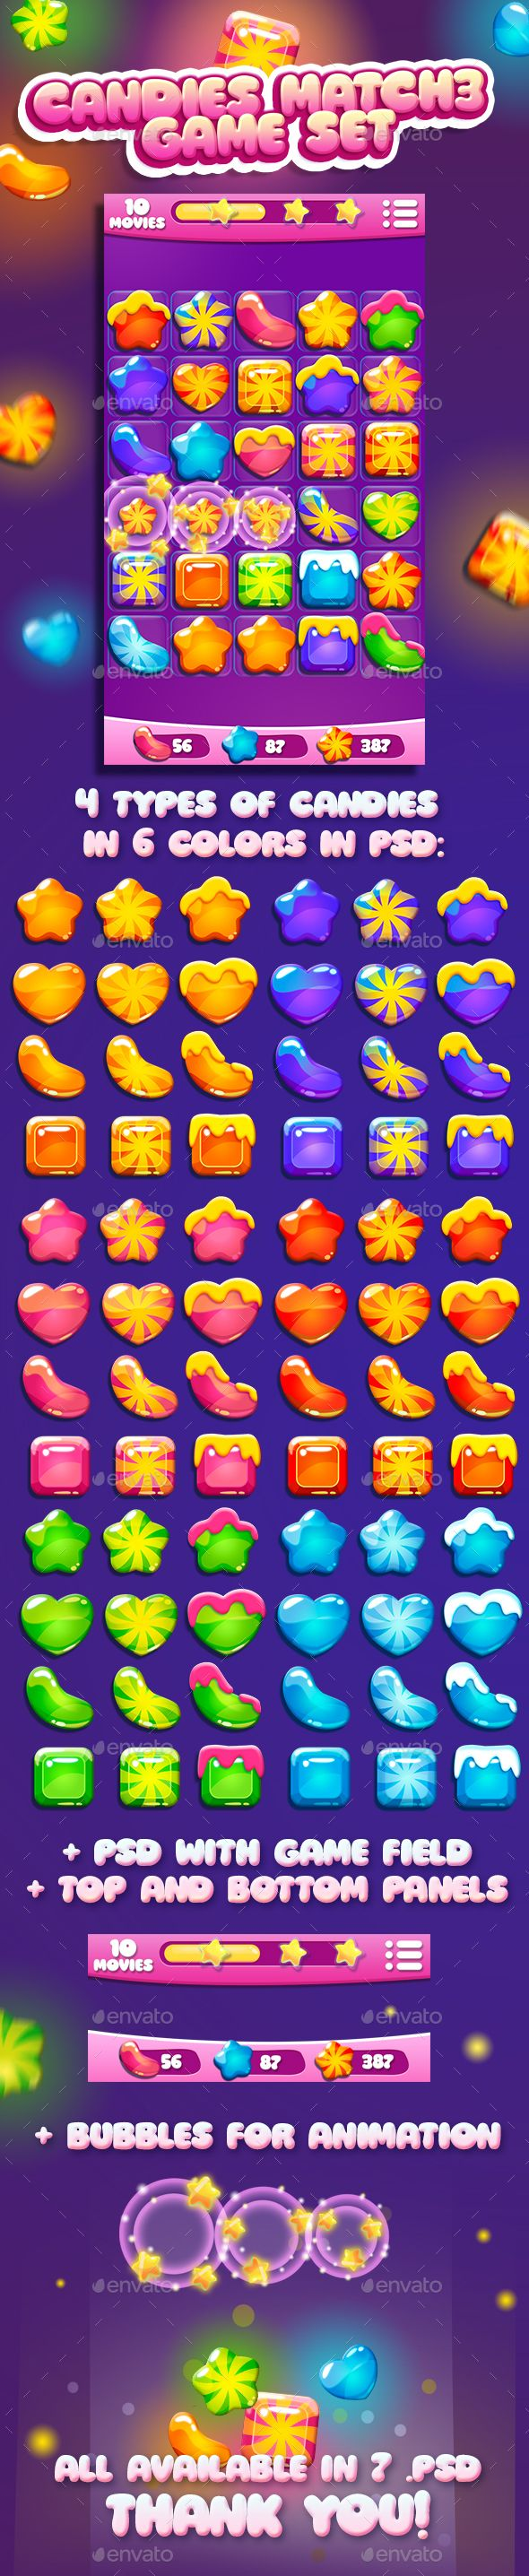 Candies for Match3 Game Set + game UI Download here: https://graphicriver.net/item/candies-for-match3-game-set-game-ui/13459855?ref=KlitVogli